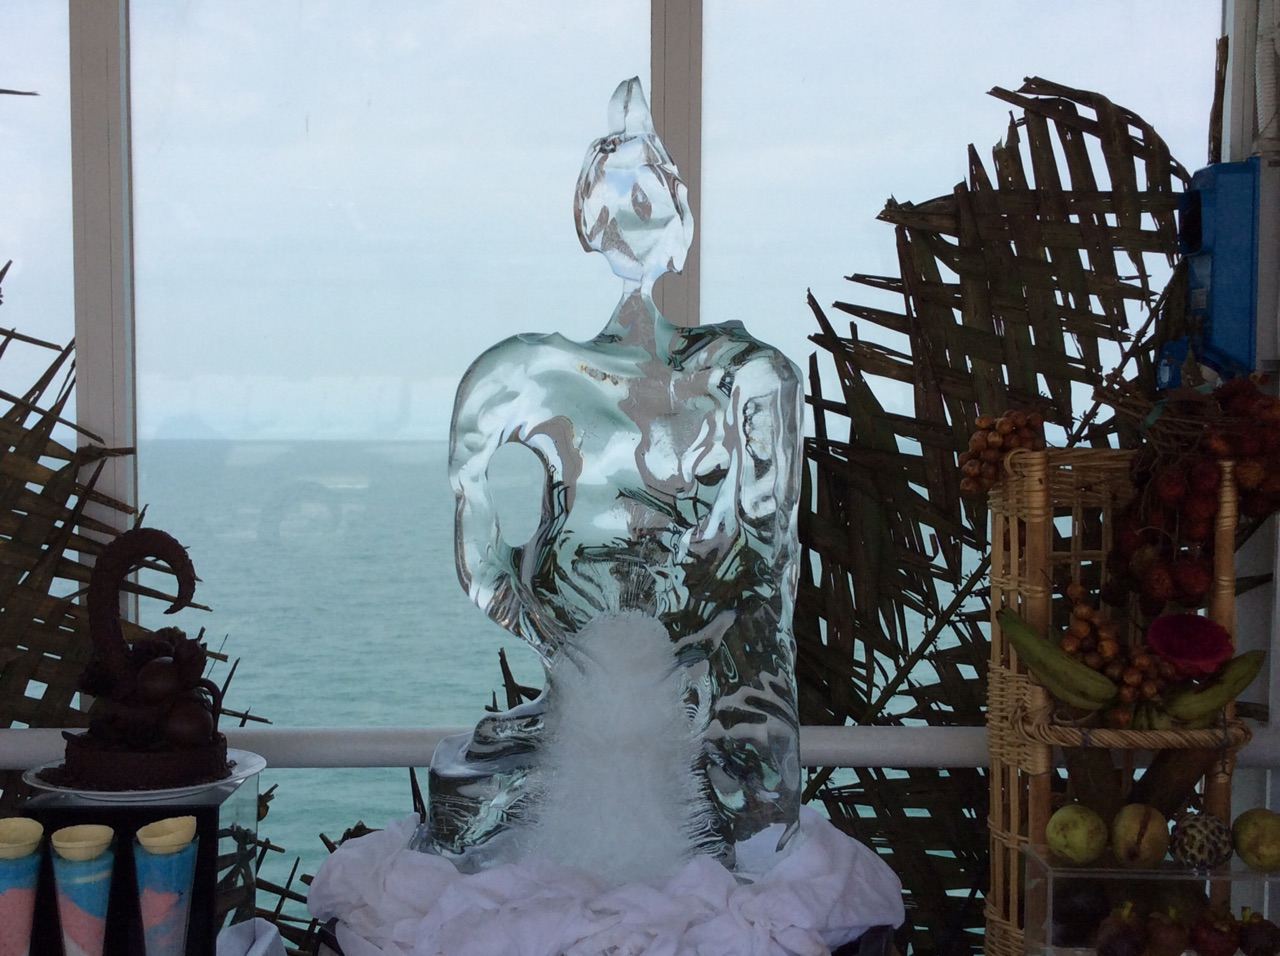 Ice sculpture at lunch